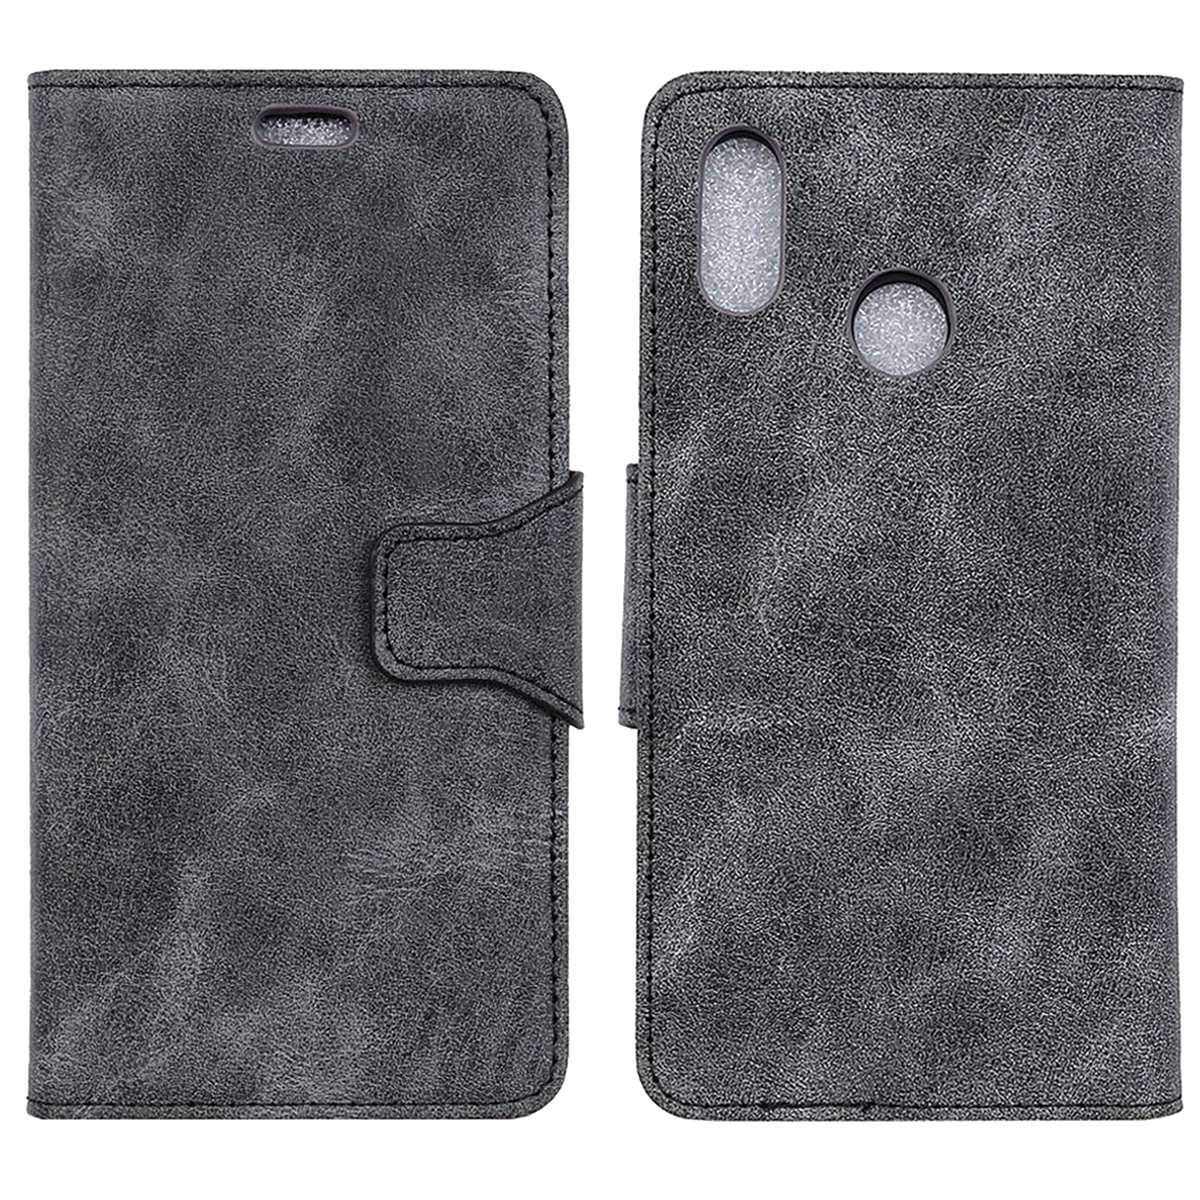 Redmi Note 6 Pro Case, CHIHENG Premium Retro Pattern PU Leather Magnetic Flip Cards Slot Wallet TPU Inner Stand Protective Cover Case for Xiaomi Redmi Note 6 Pro 6.26' Grey